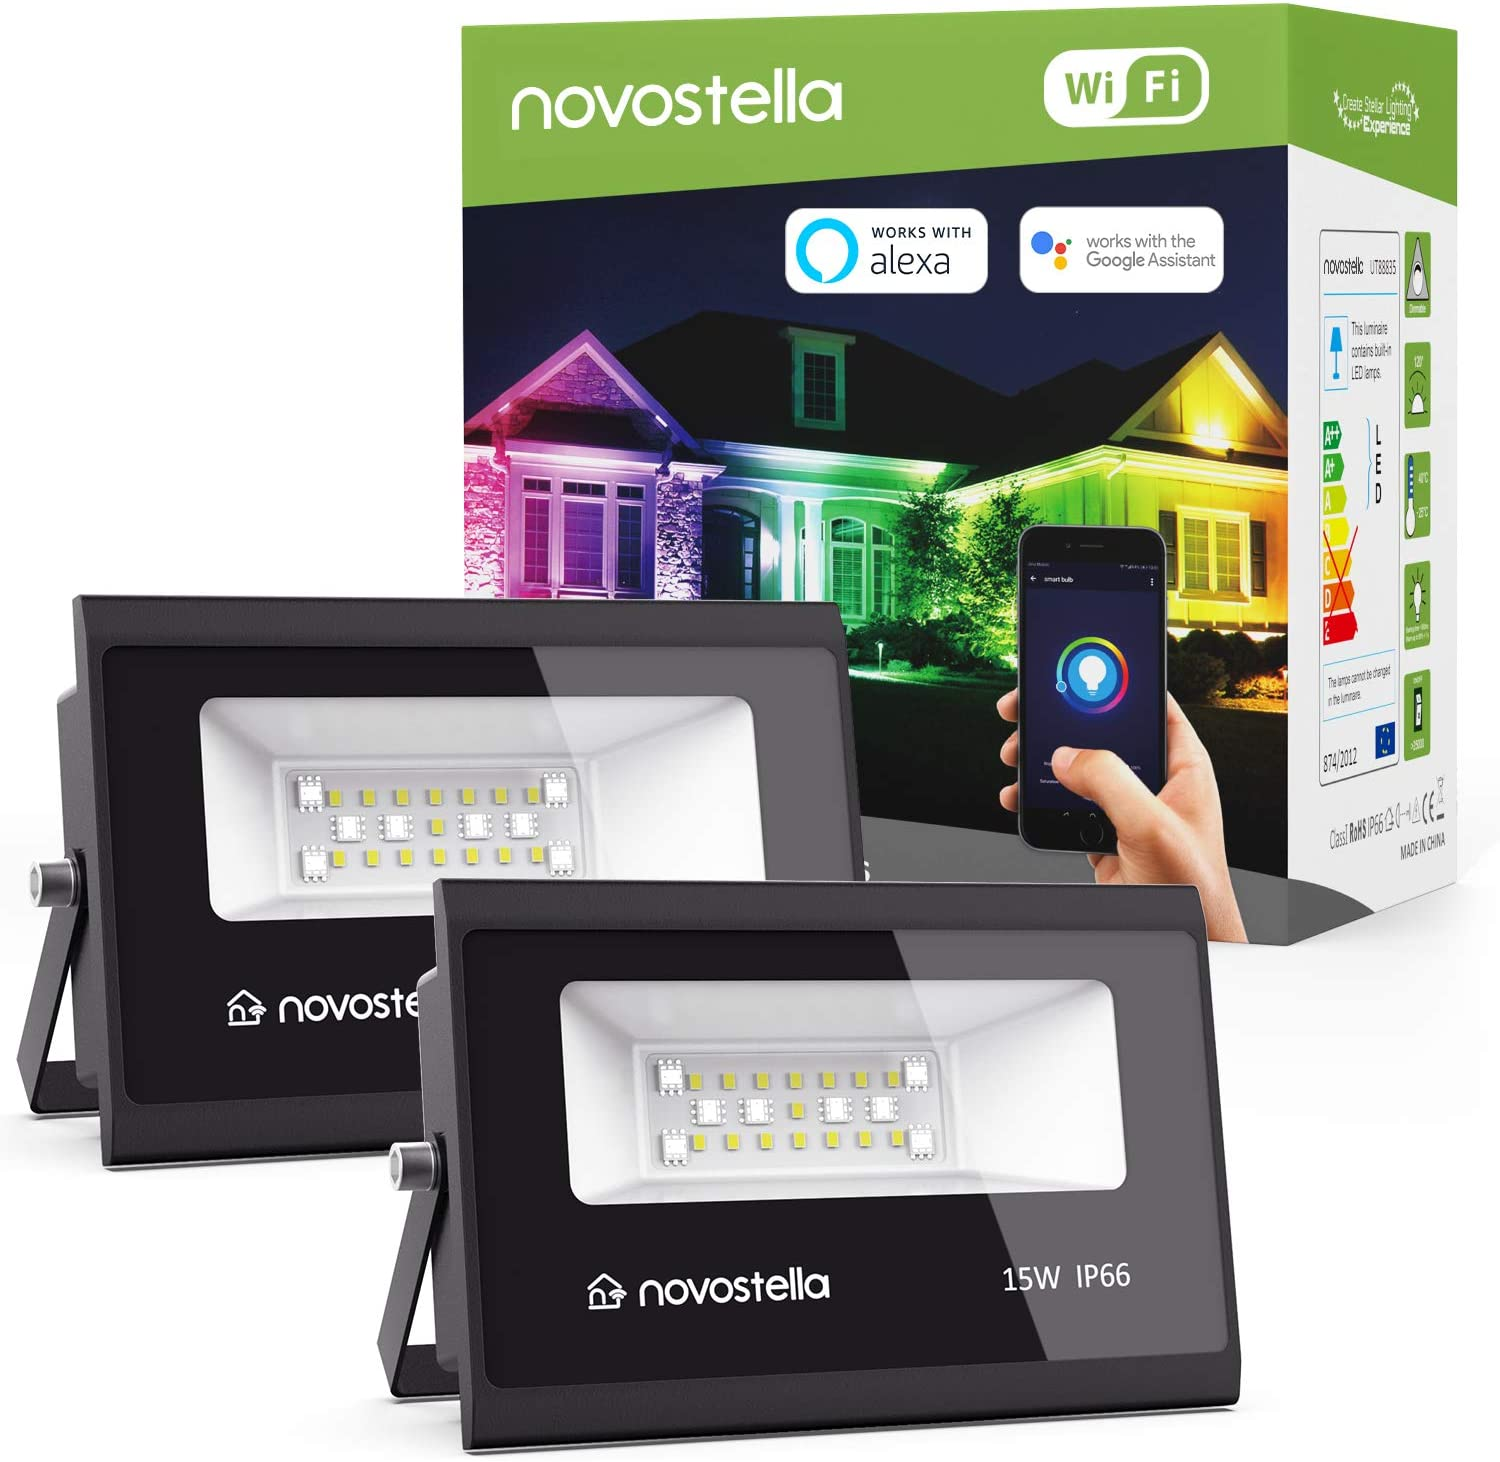 Novostella 2 Pack 15W Smart LED Flood Lights, RGB, Daylight White 5000k, WiFi Outdoor Dimmable Color Changing Stage Light, IP66 Waterproof, Multicolor Wall Washer Light, Work with Alexa